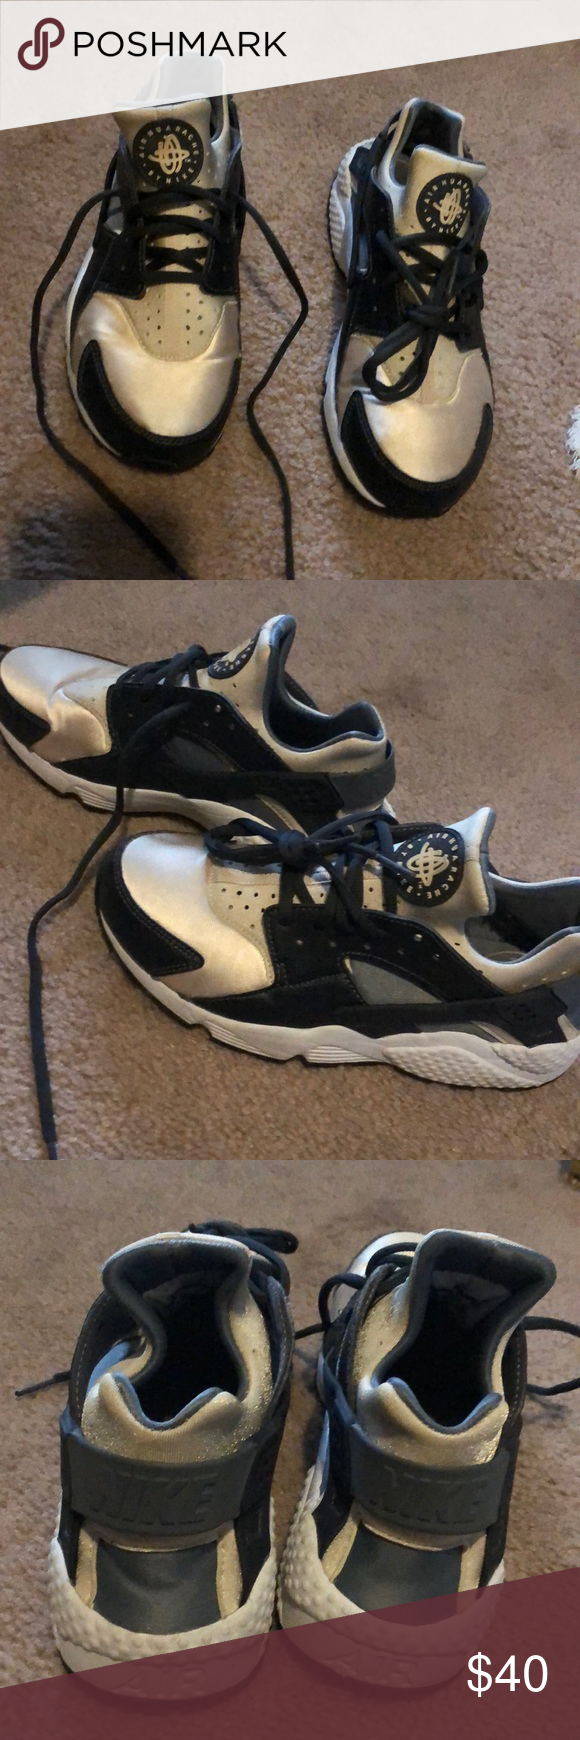 ce7cf1bc3b Nike air huarache sneakers Great condition. Hardly worn. No stains. I'm  usually a 7.6 but these run small. So a 8.5 fits perfect ! Nike Shoes  Athletic Shoes